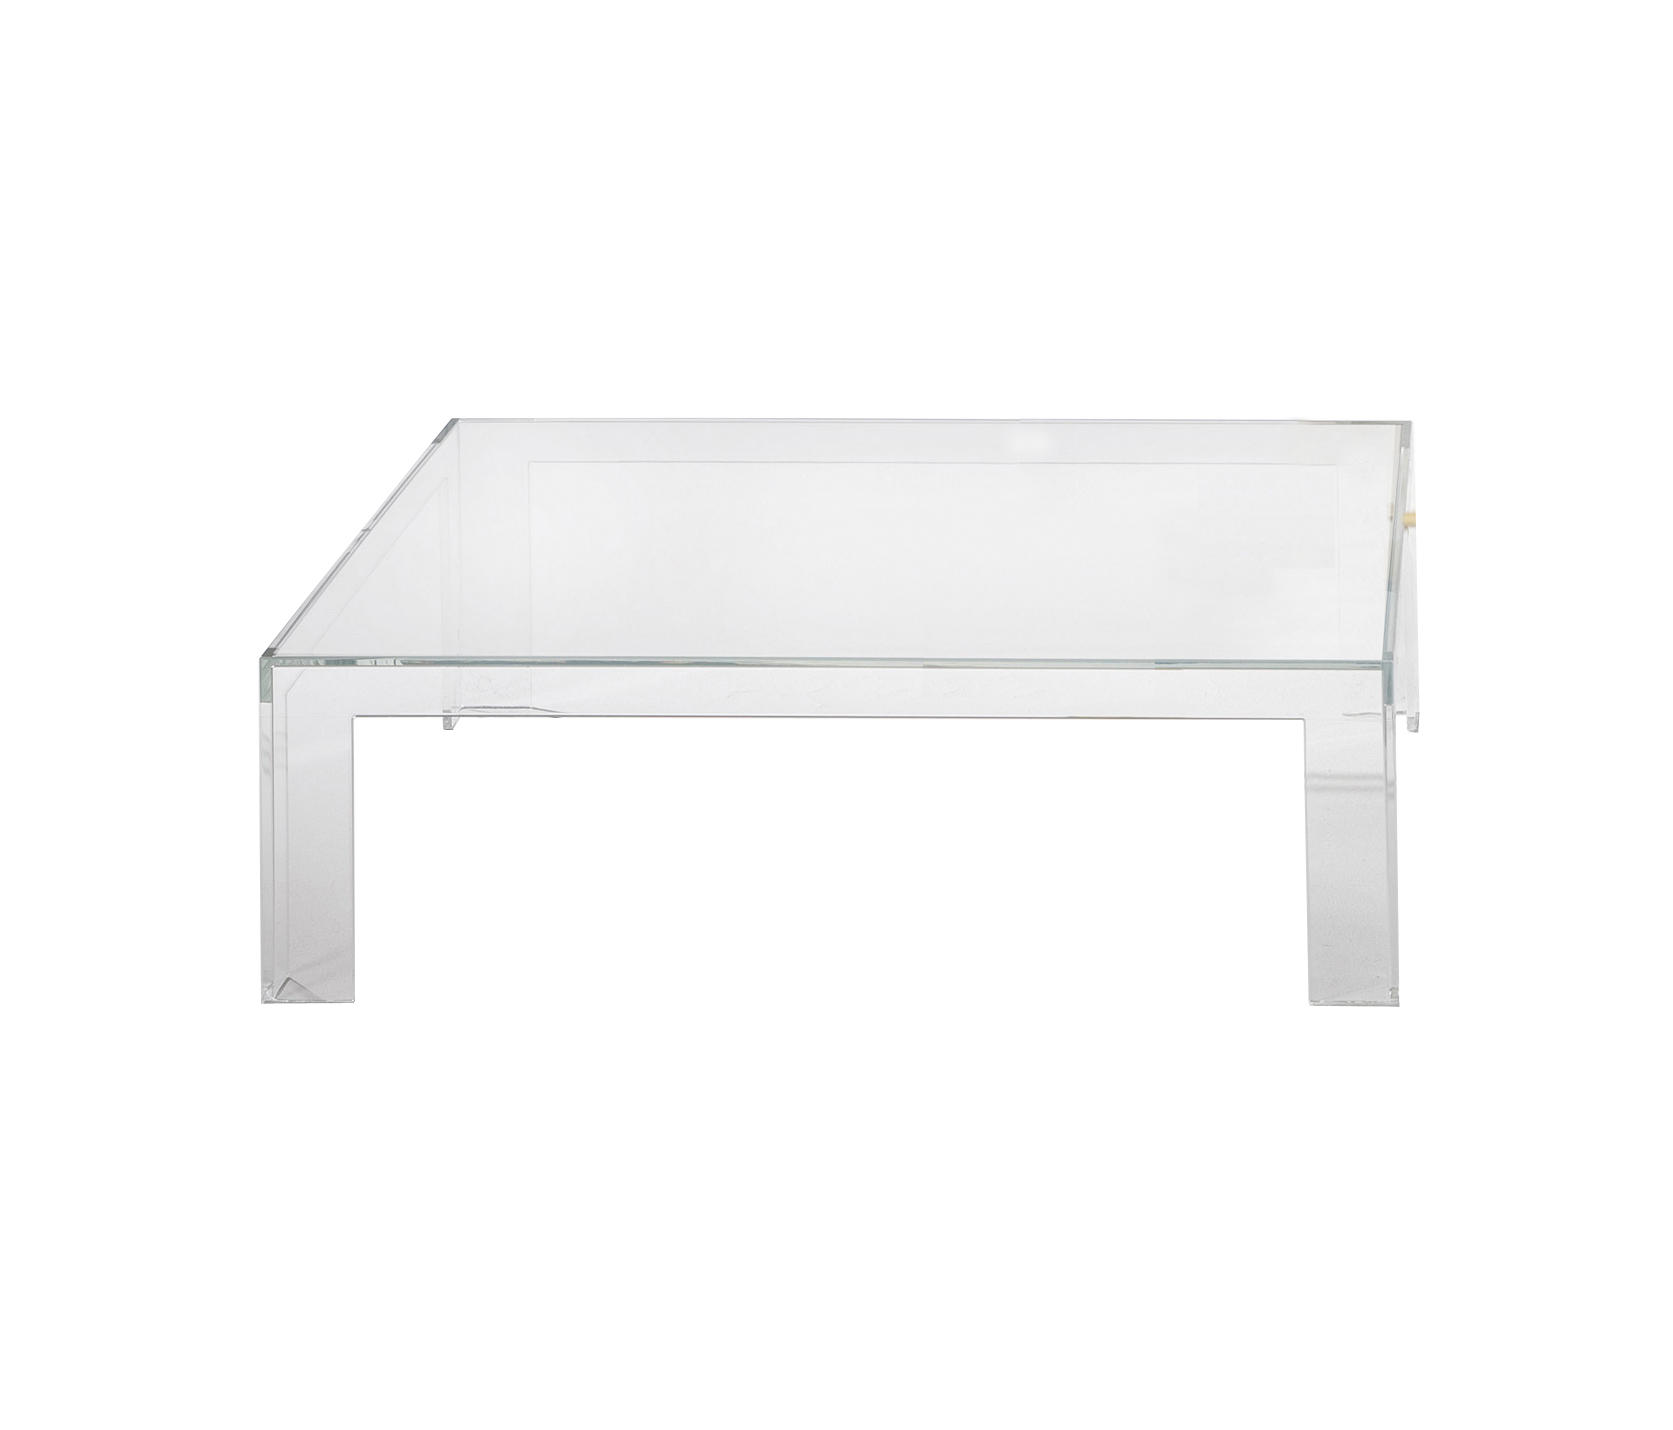 Kartell Tavolini Da Salotto Invisible Table Low Tavolini Da Salotto Kartell Architonic